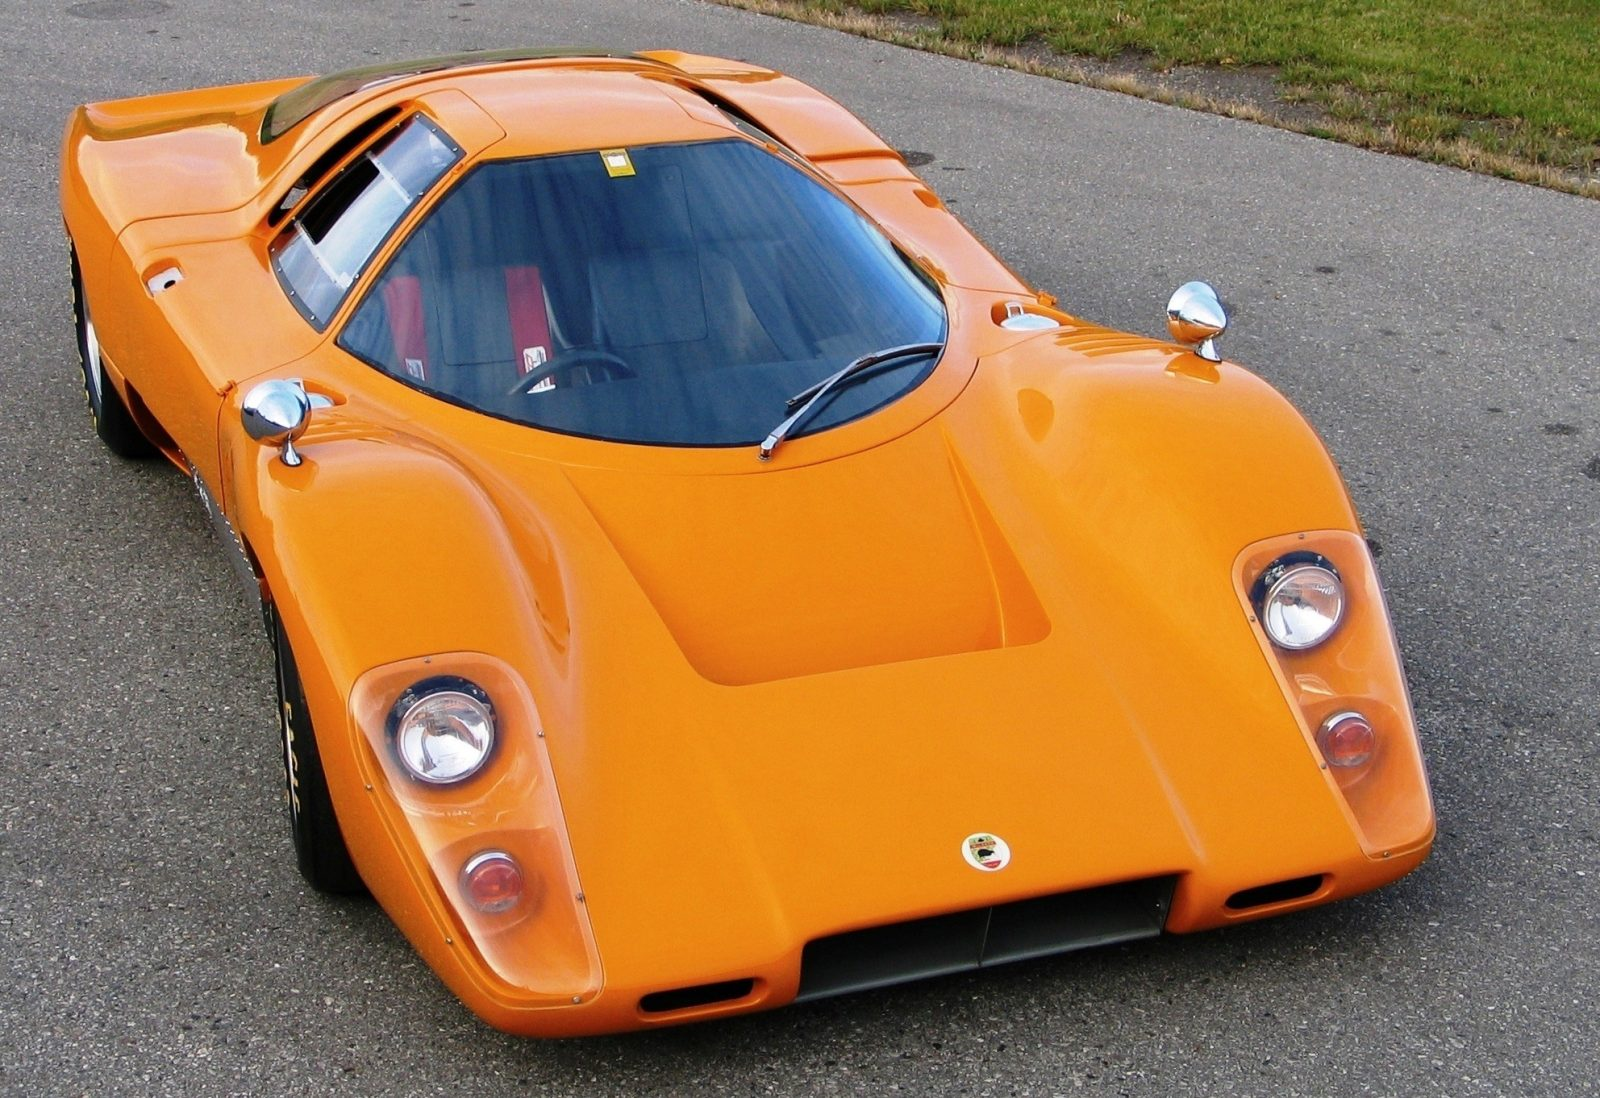 1969 McLaren M6GT - Specs vs F1 and P1 - Photo 50